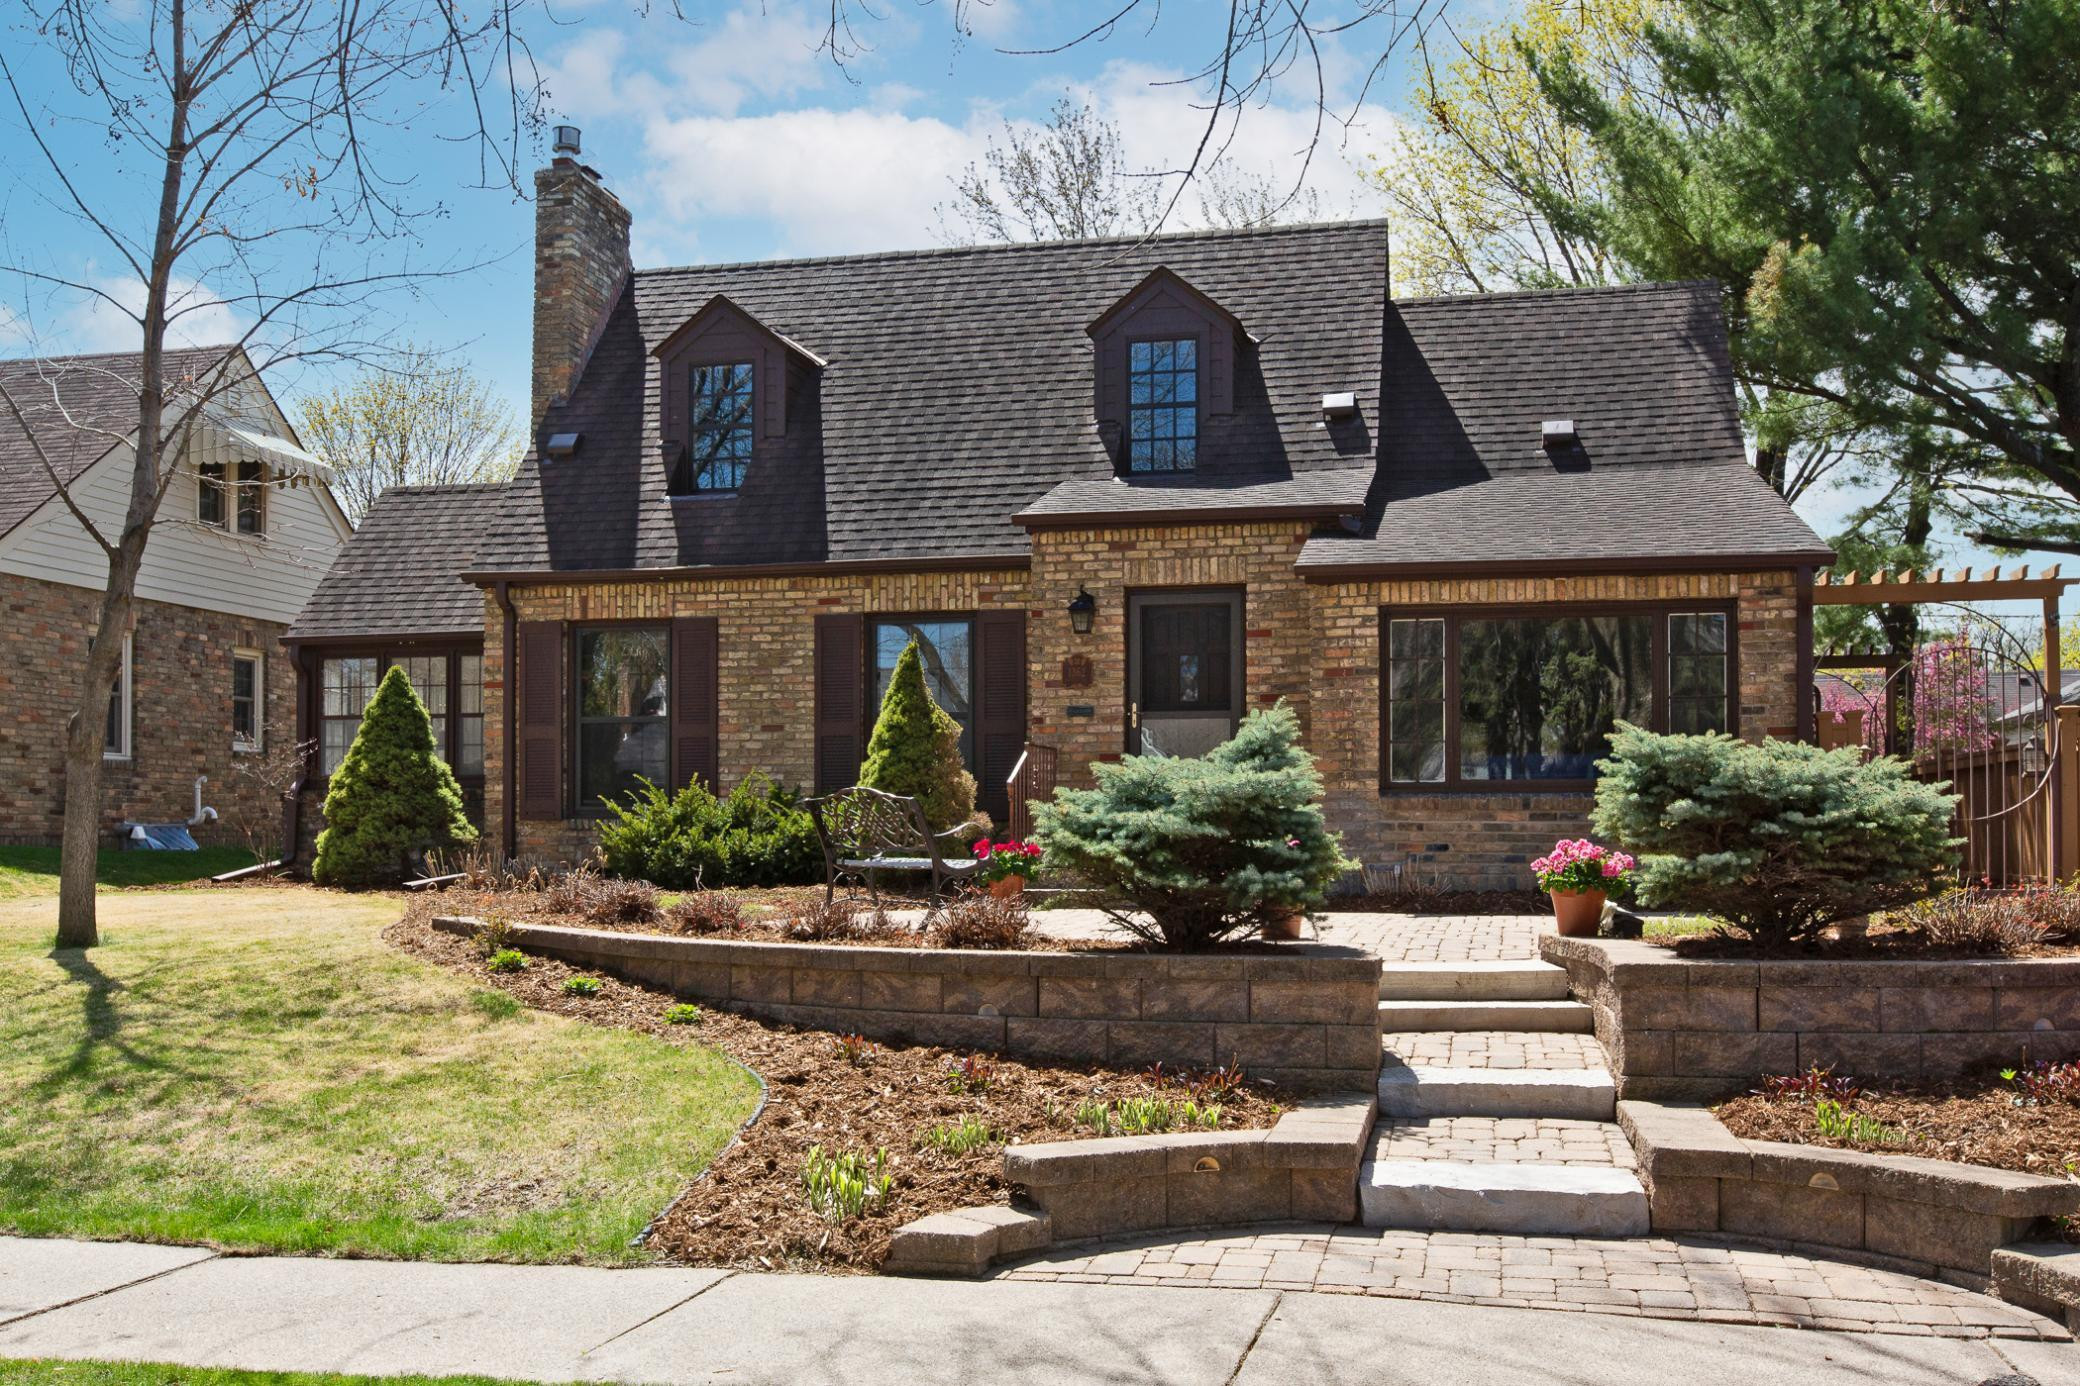 Beautifully landscaped Cottage style home